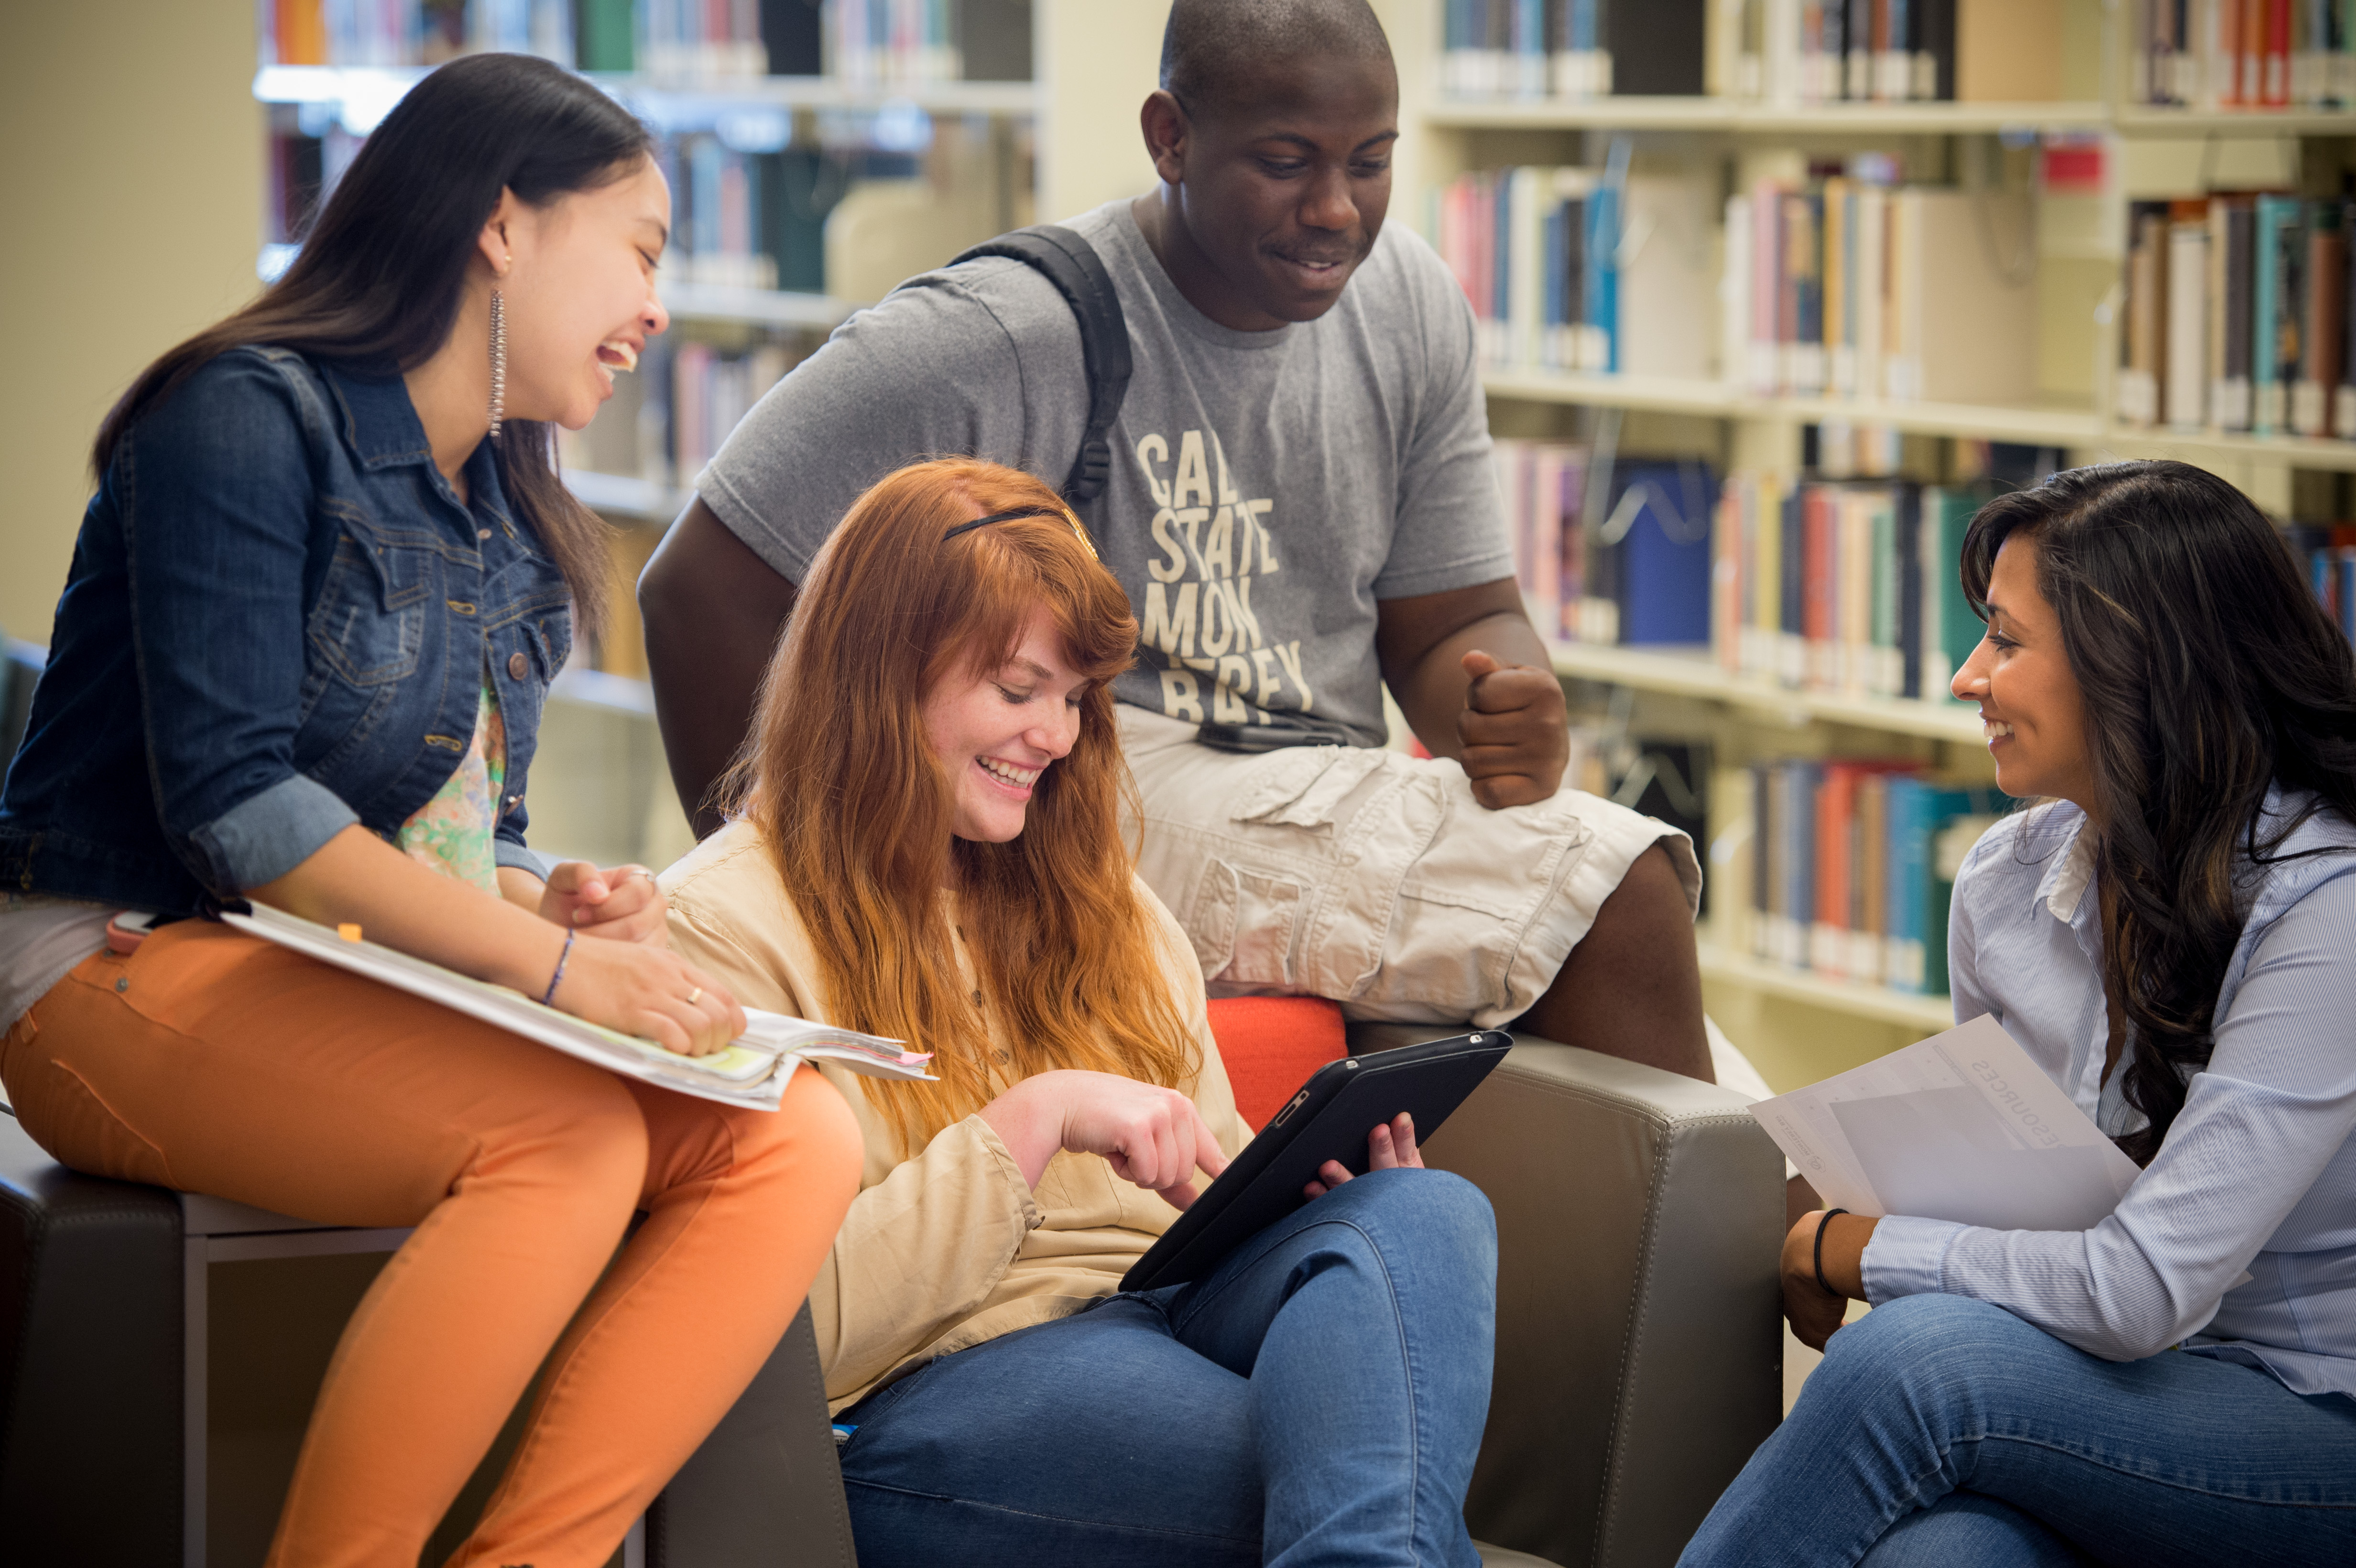 CSUMB Students in Library